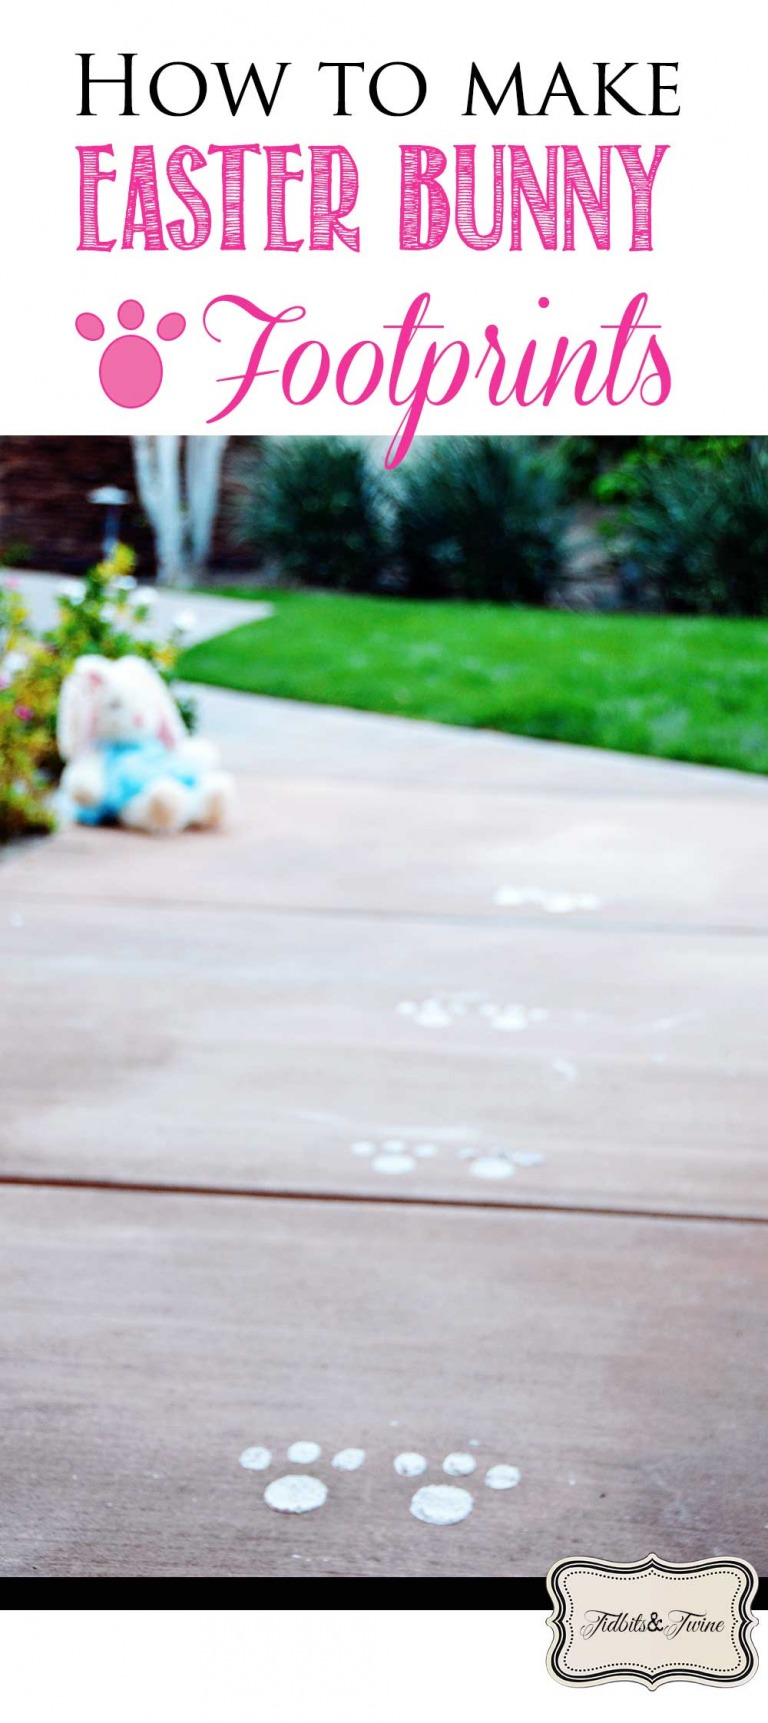 How to Make Easter Bunny Footprints: An Easy & Magical DIY